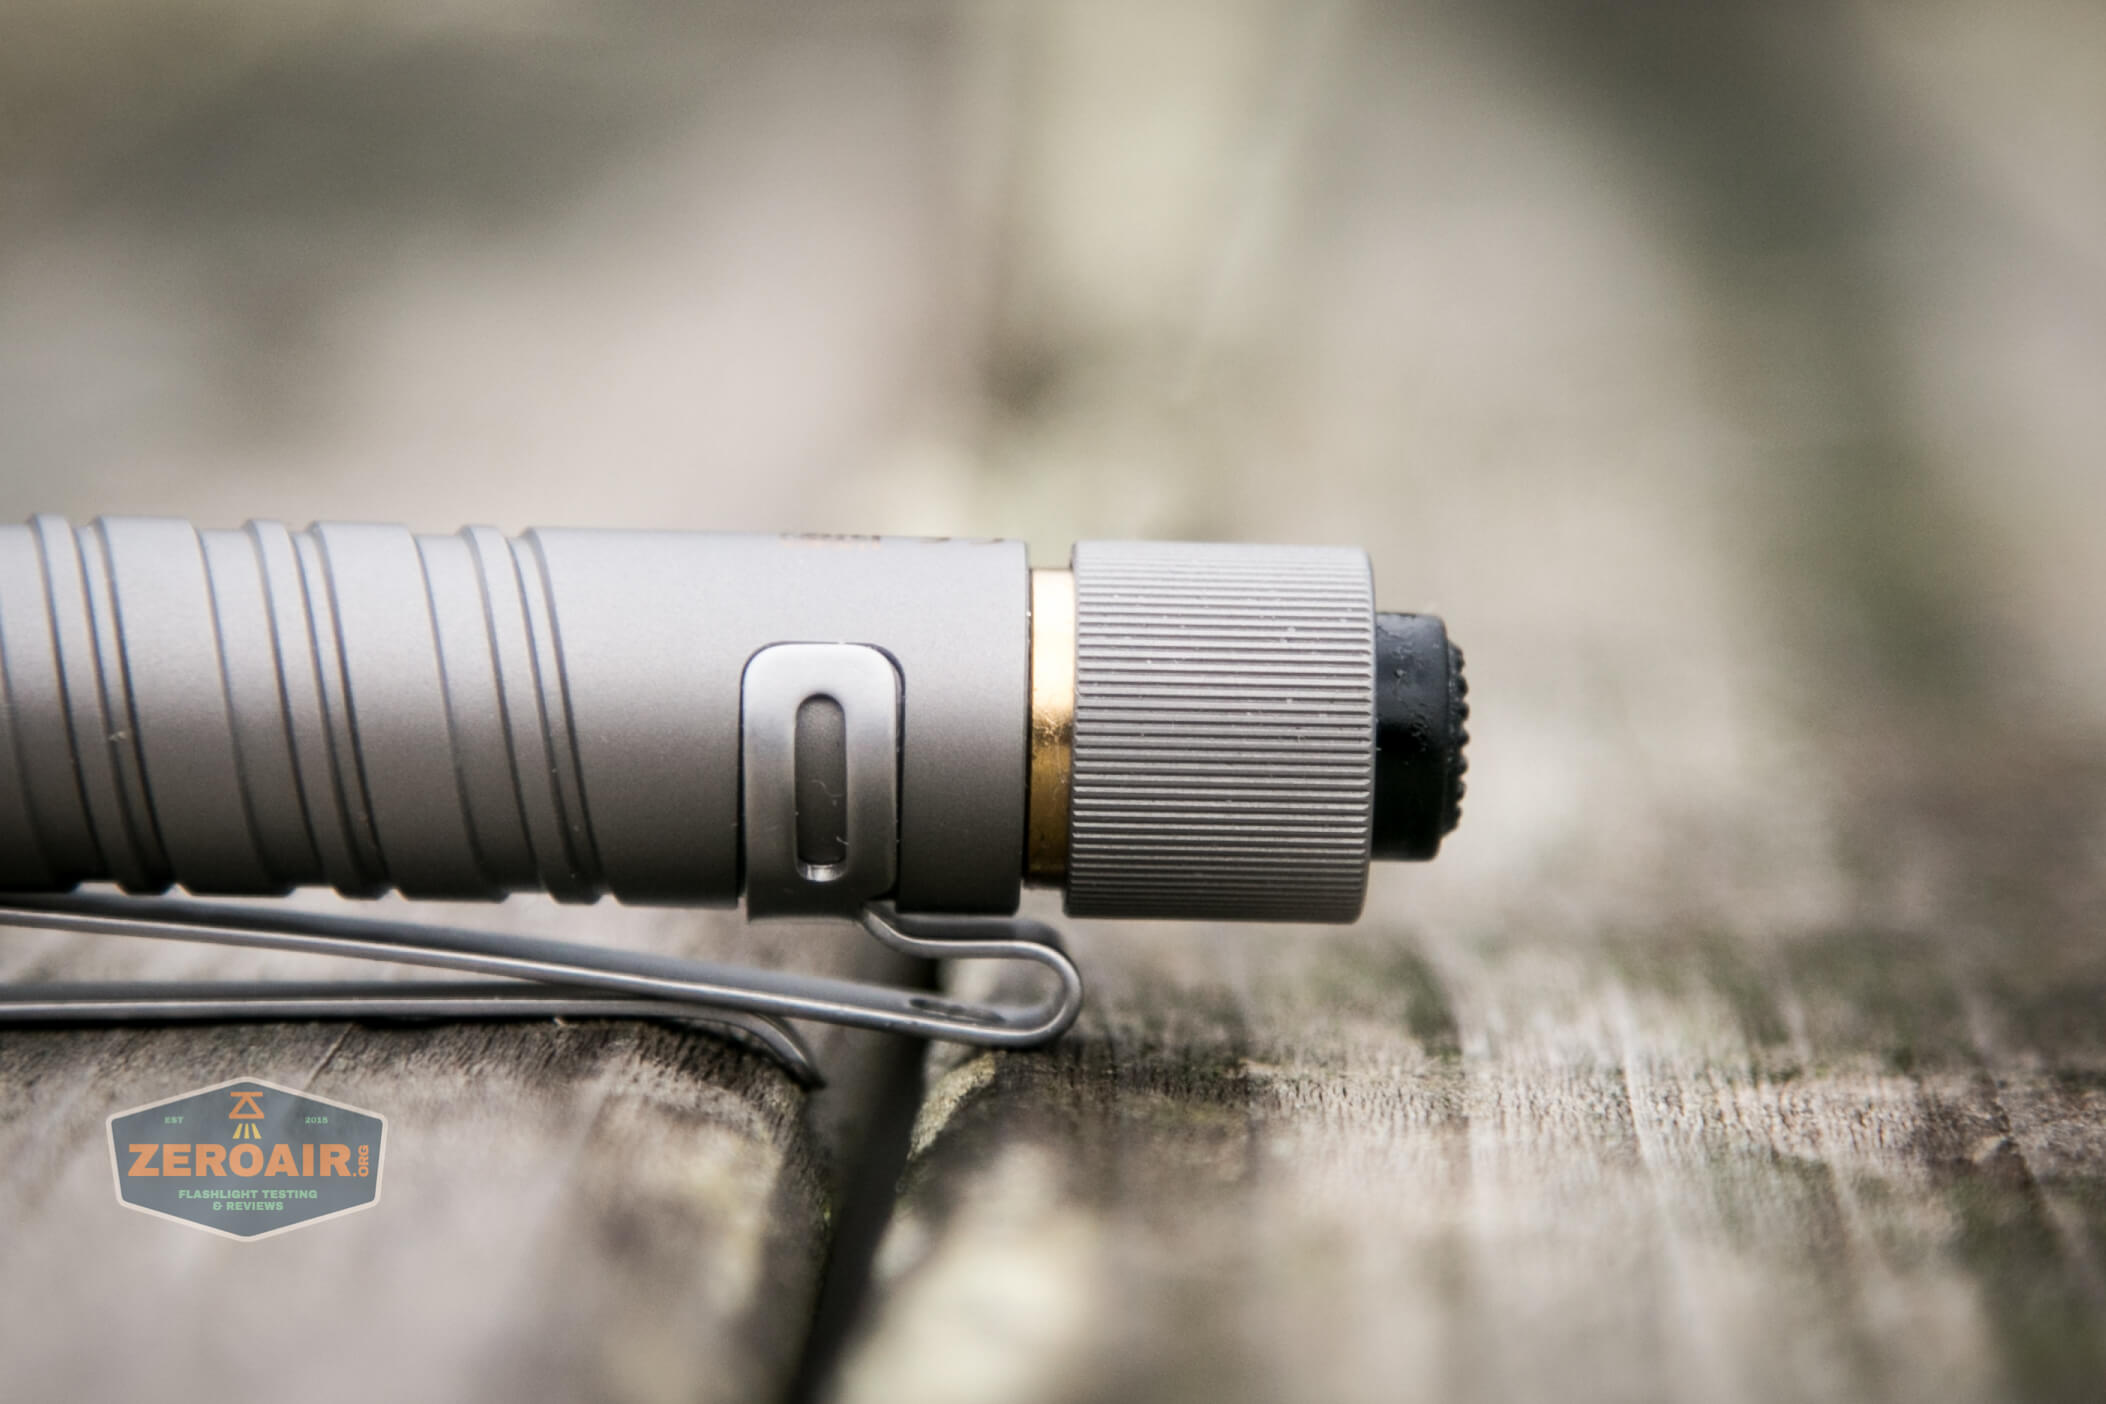 olight i3t eos titanium aaa flashlight brass